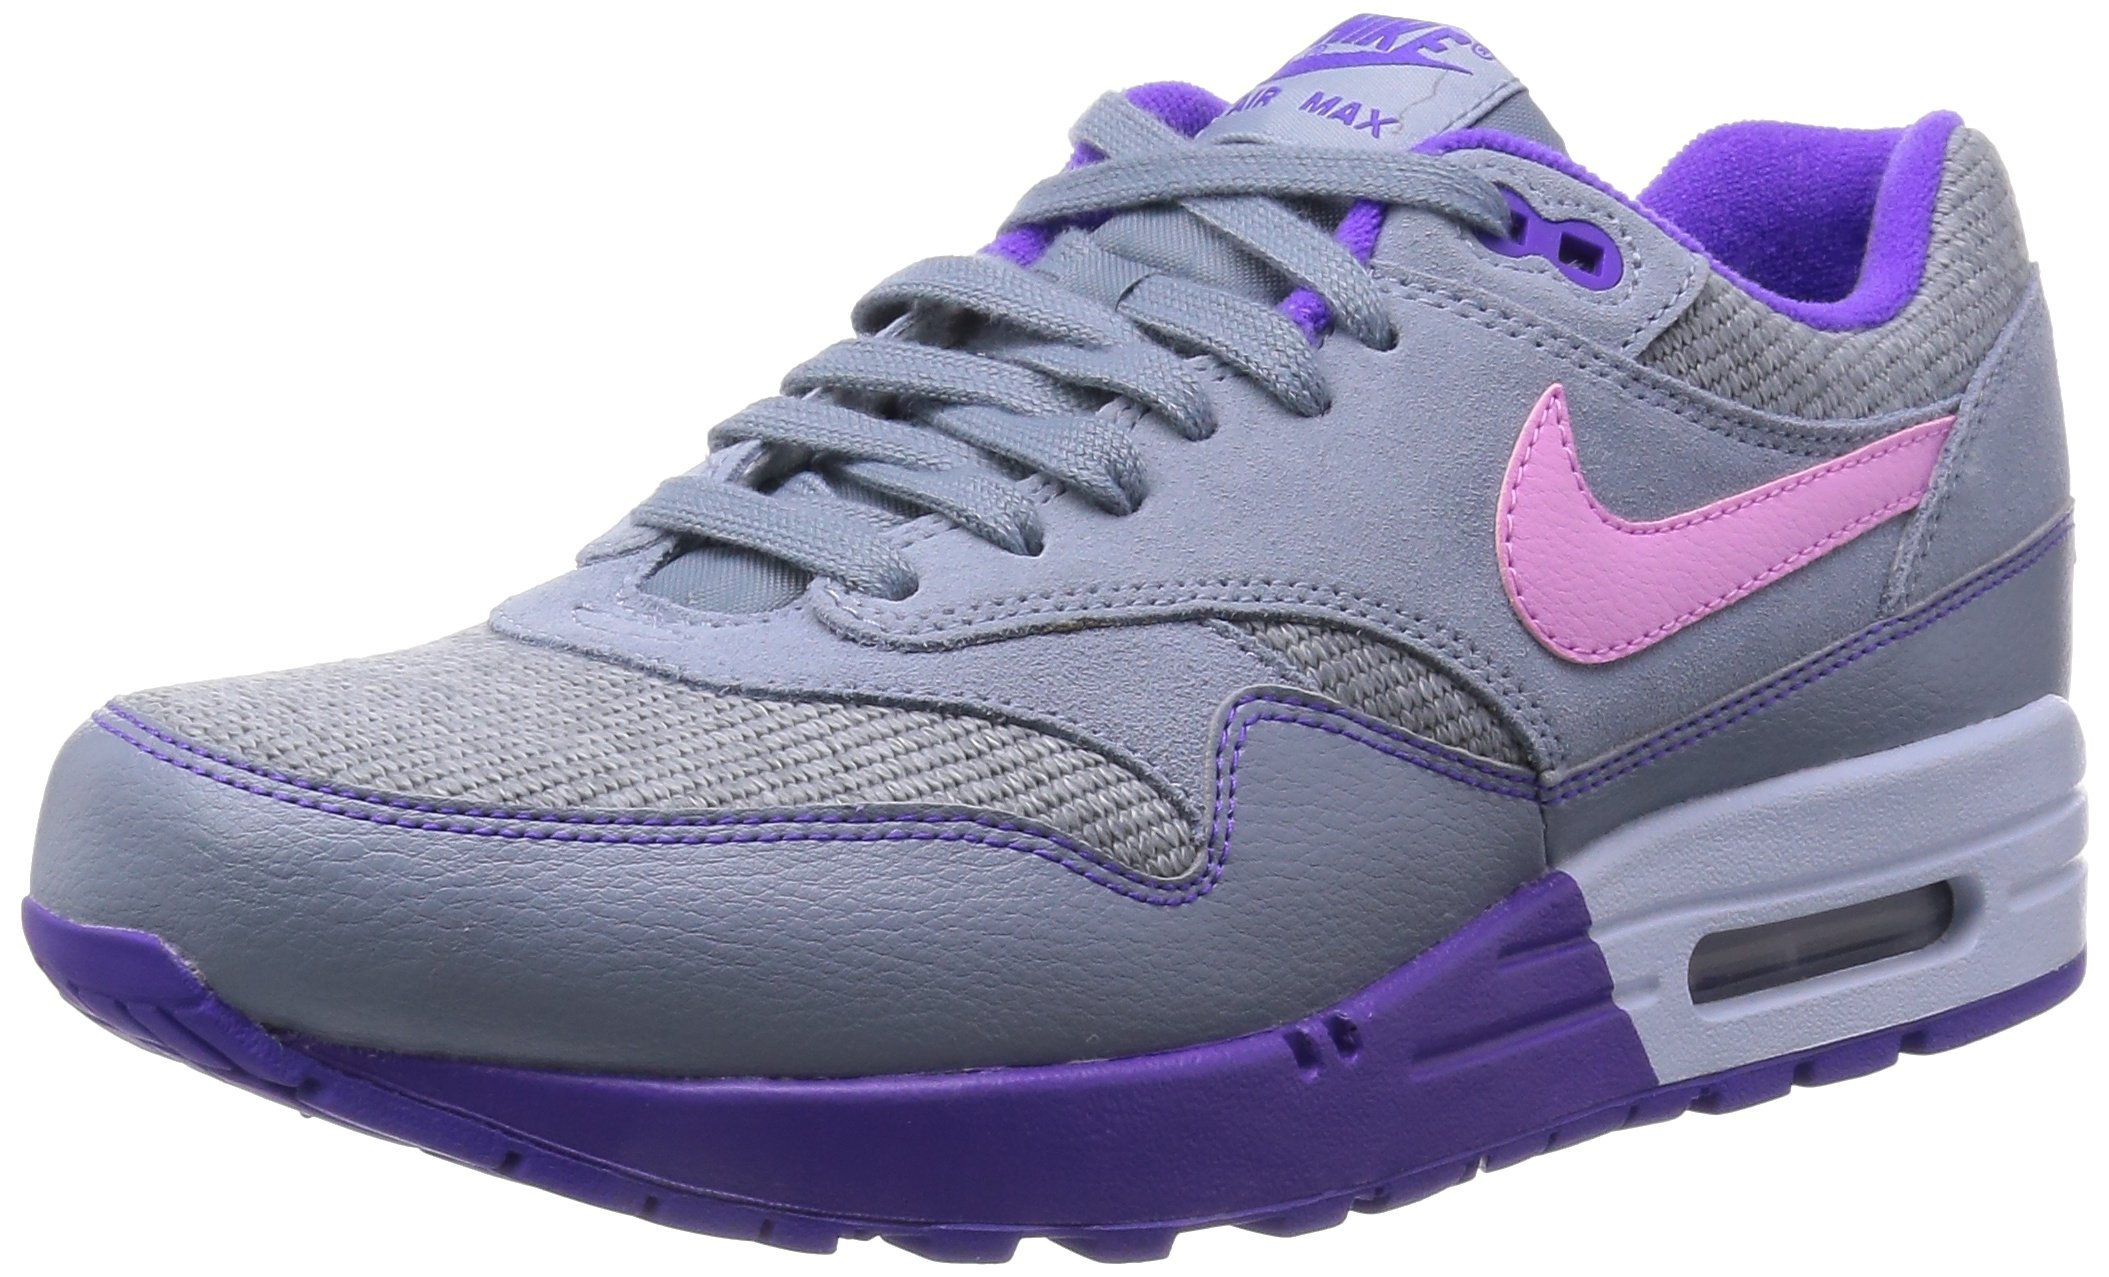 Nike Air Max 1 Magnet Grey Hyper Grape 319986 028 Buy Online In Cambodia Nike Products In Cambodia See Prices Reviews And Free Delivery Over 27 000 Desertcart